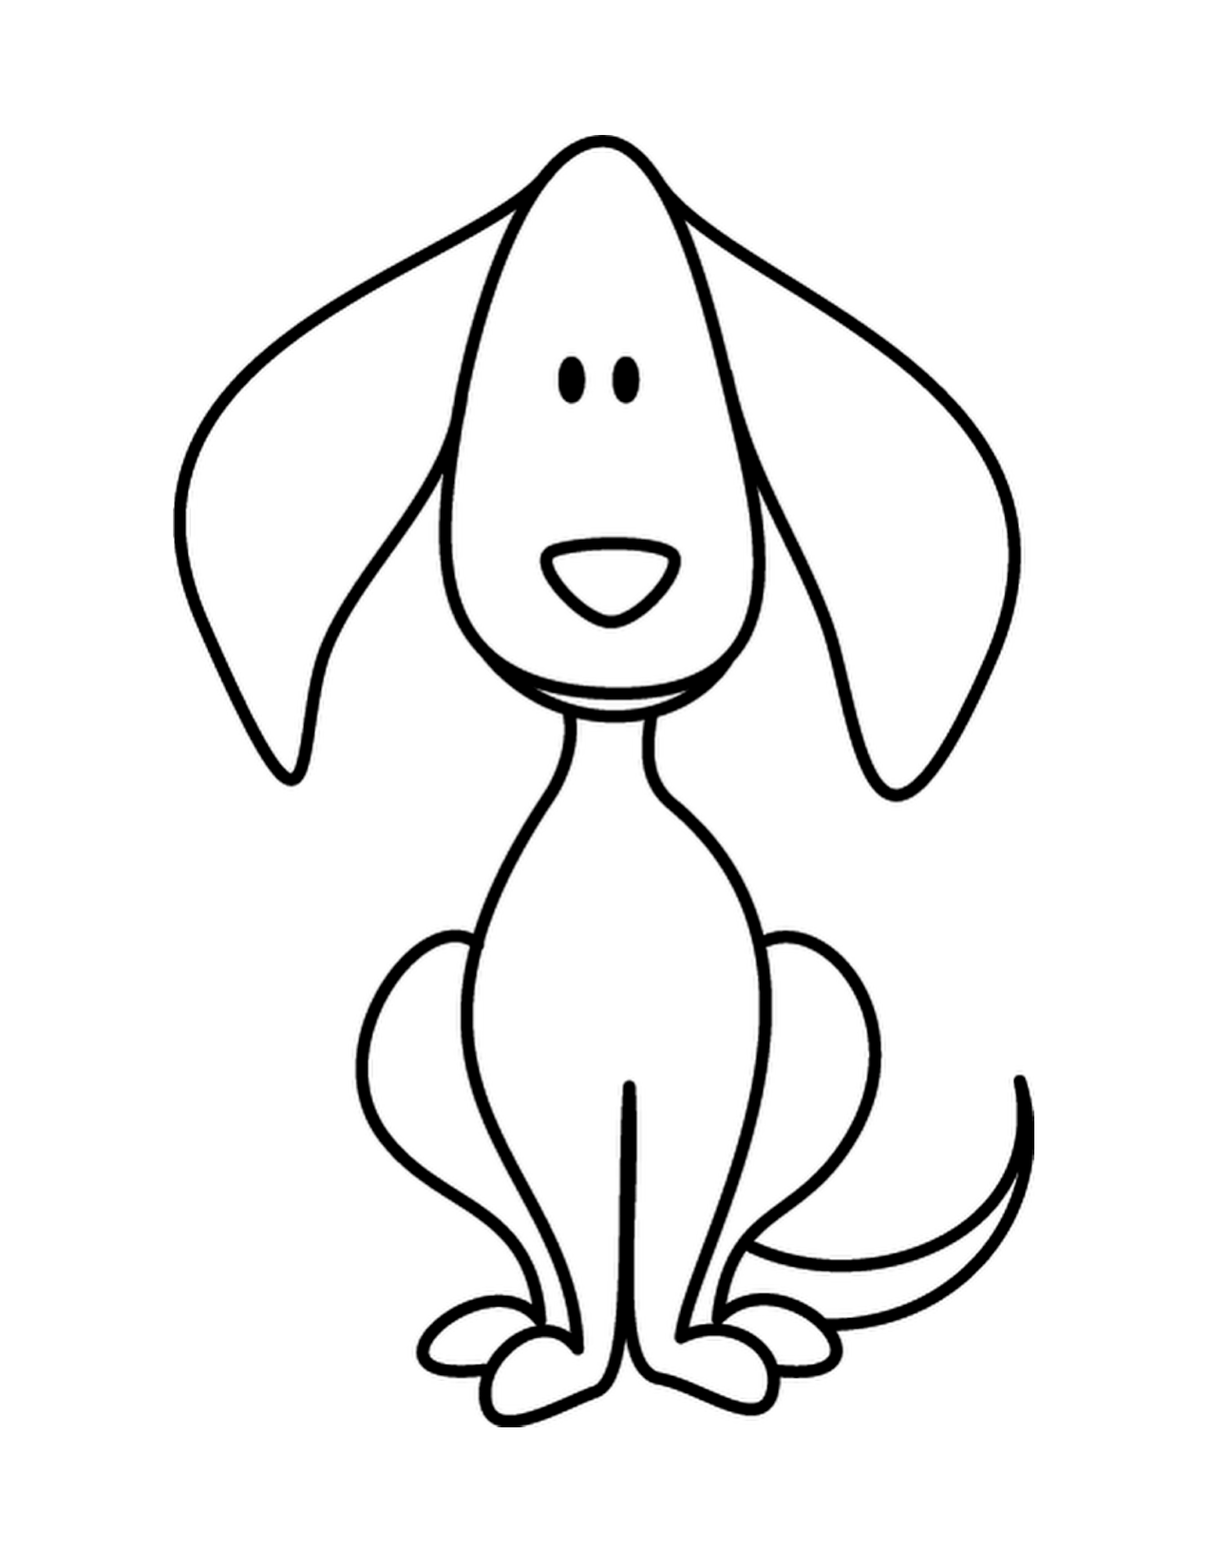 Dog Clipart Simple